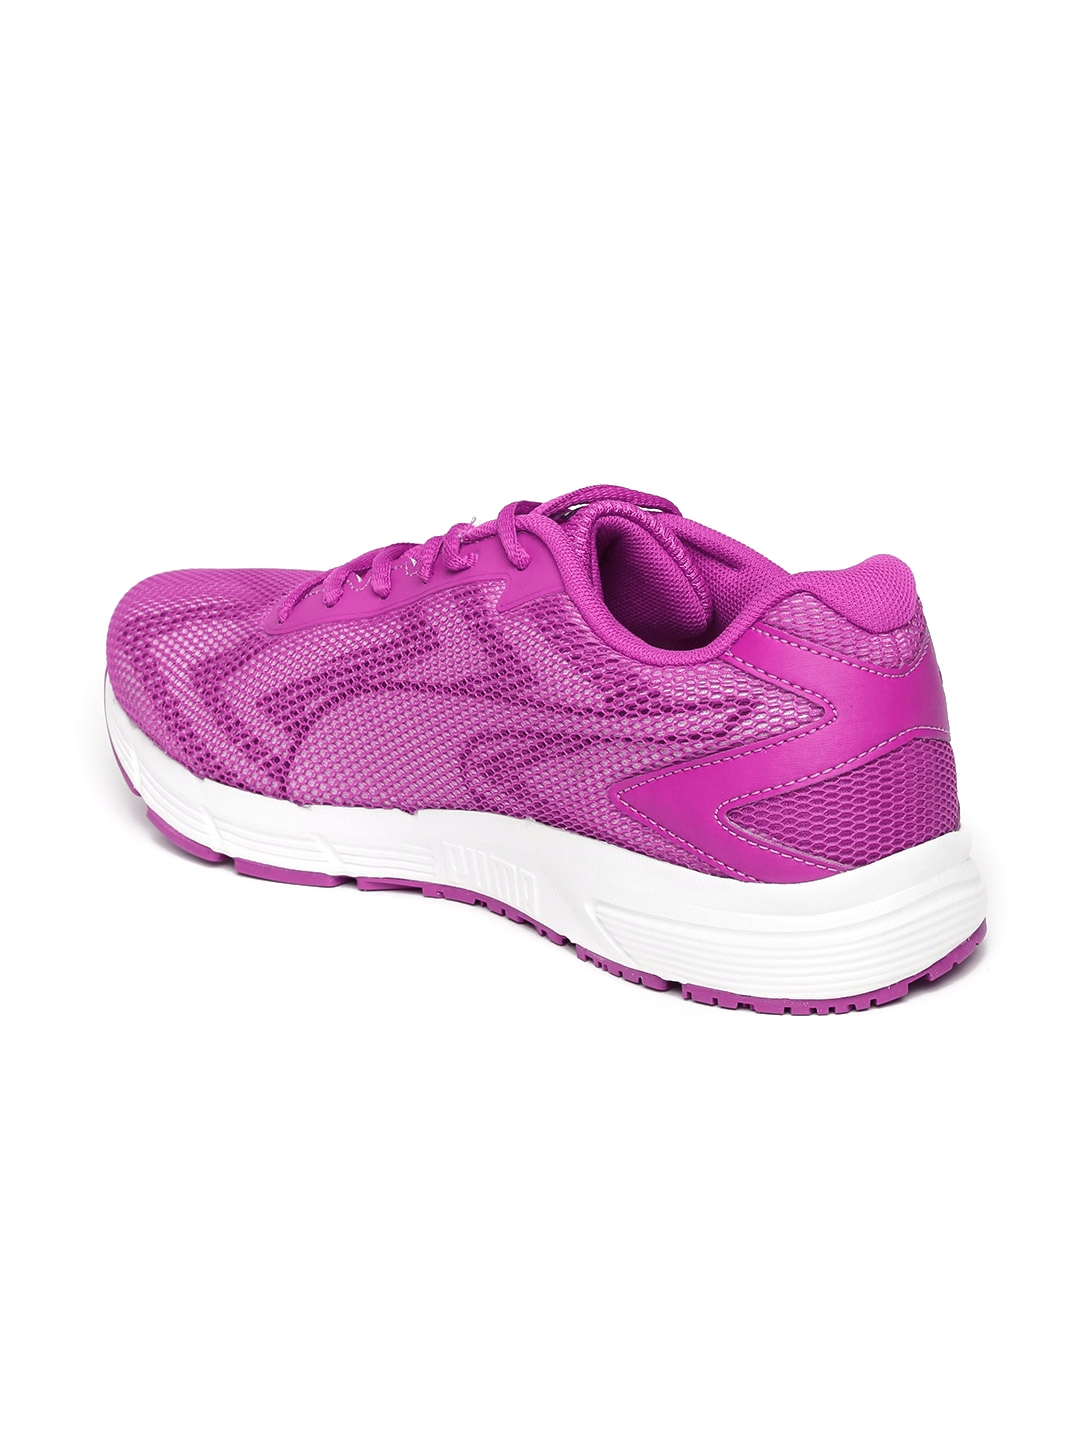 9d55cbc7e2 Buy PUMA Women Magenta Engine IDP Running Shoes - Sports Shoes for ...